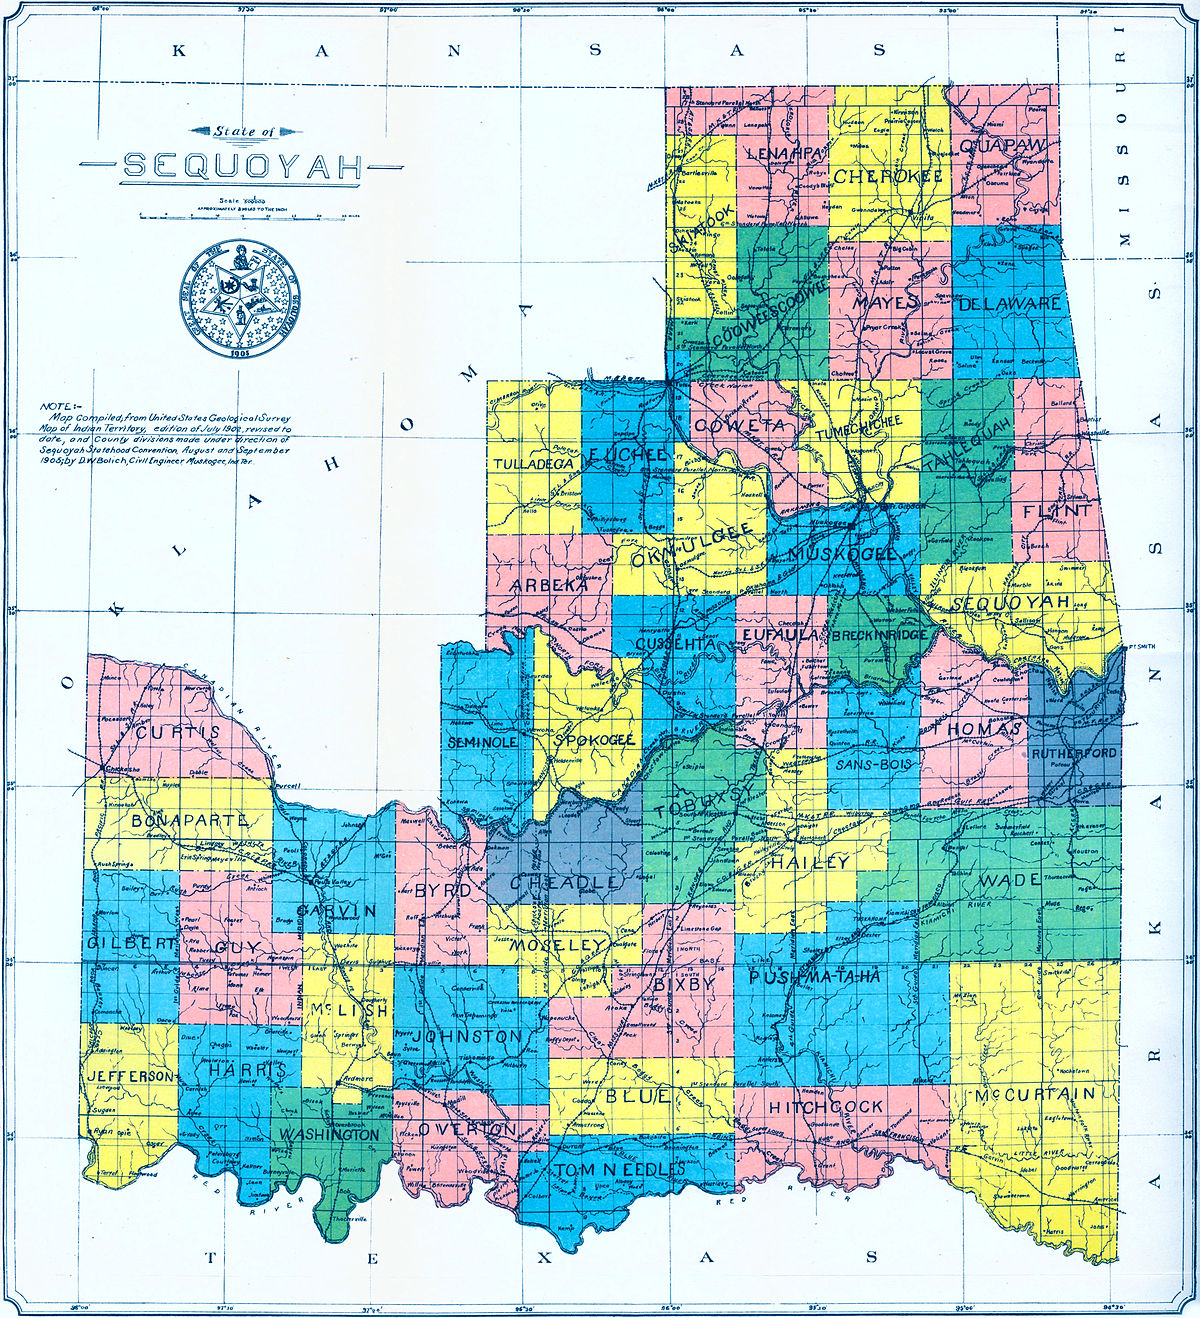 State of Sequoyah - Wikipedia on usa states map, hungary states map, red states map, un states map, so states map, union states map, best states map, hot states map, german states map,